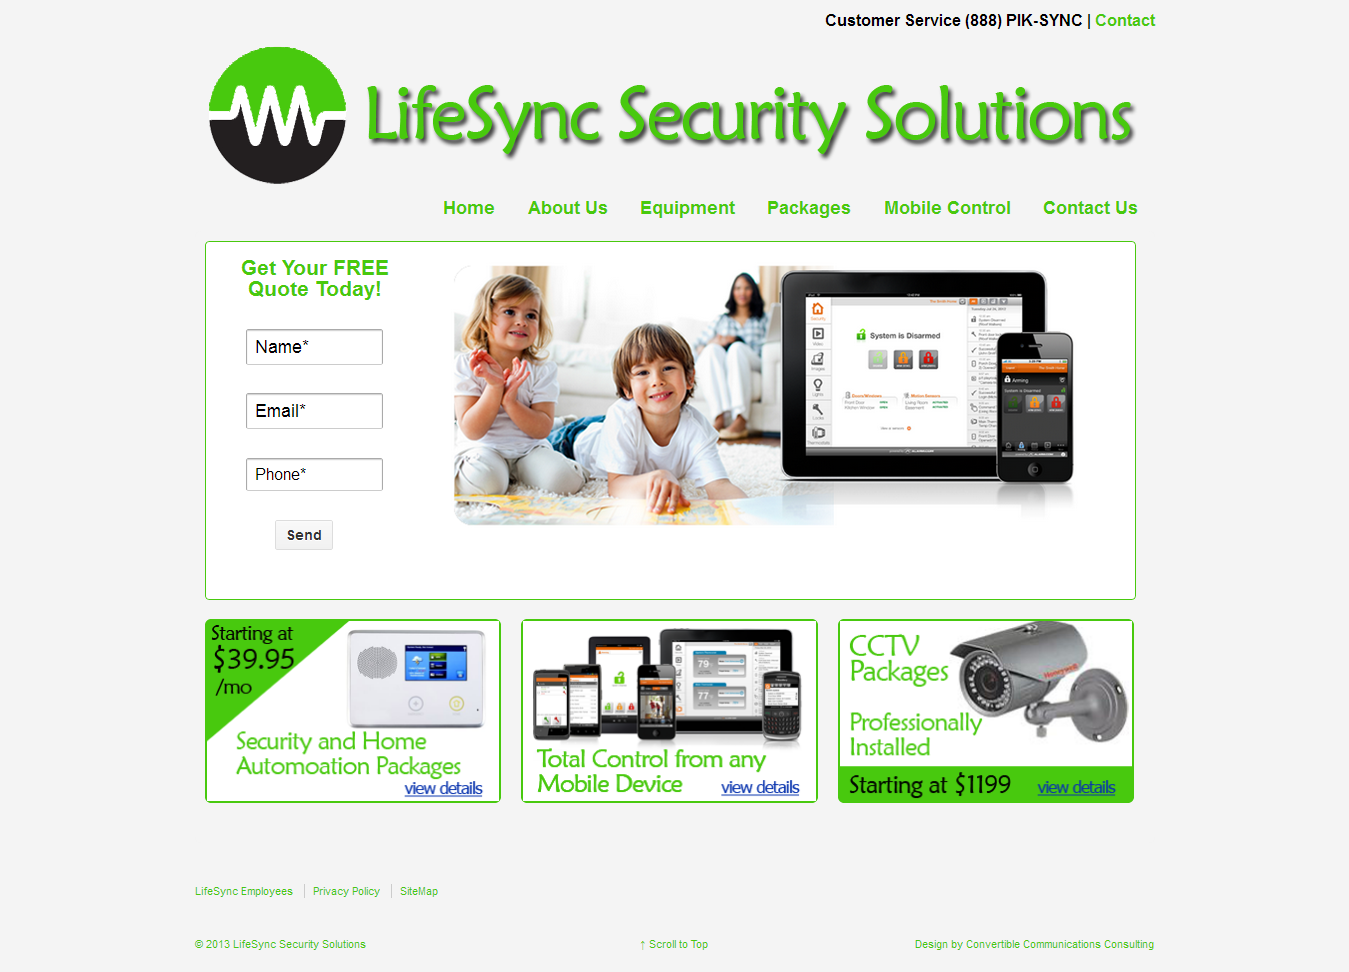 LifeSync Security Solutions website